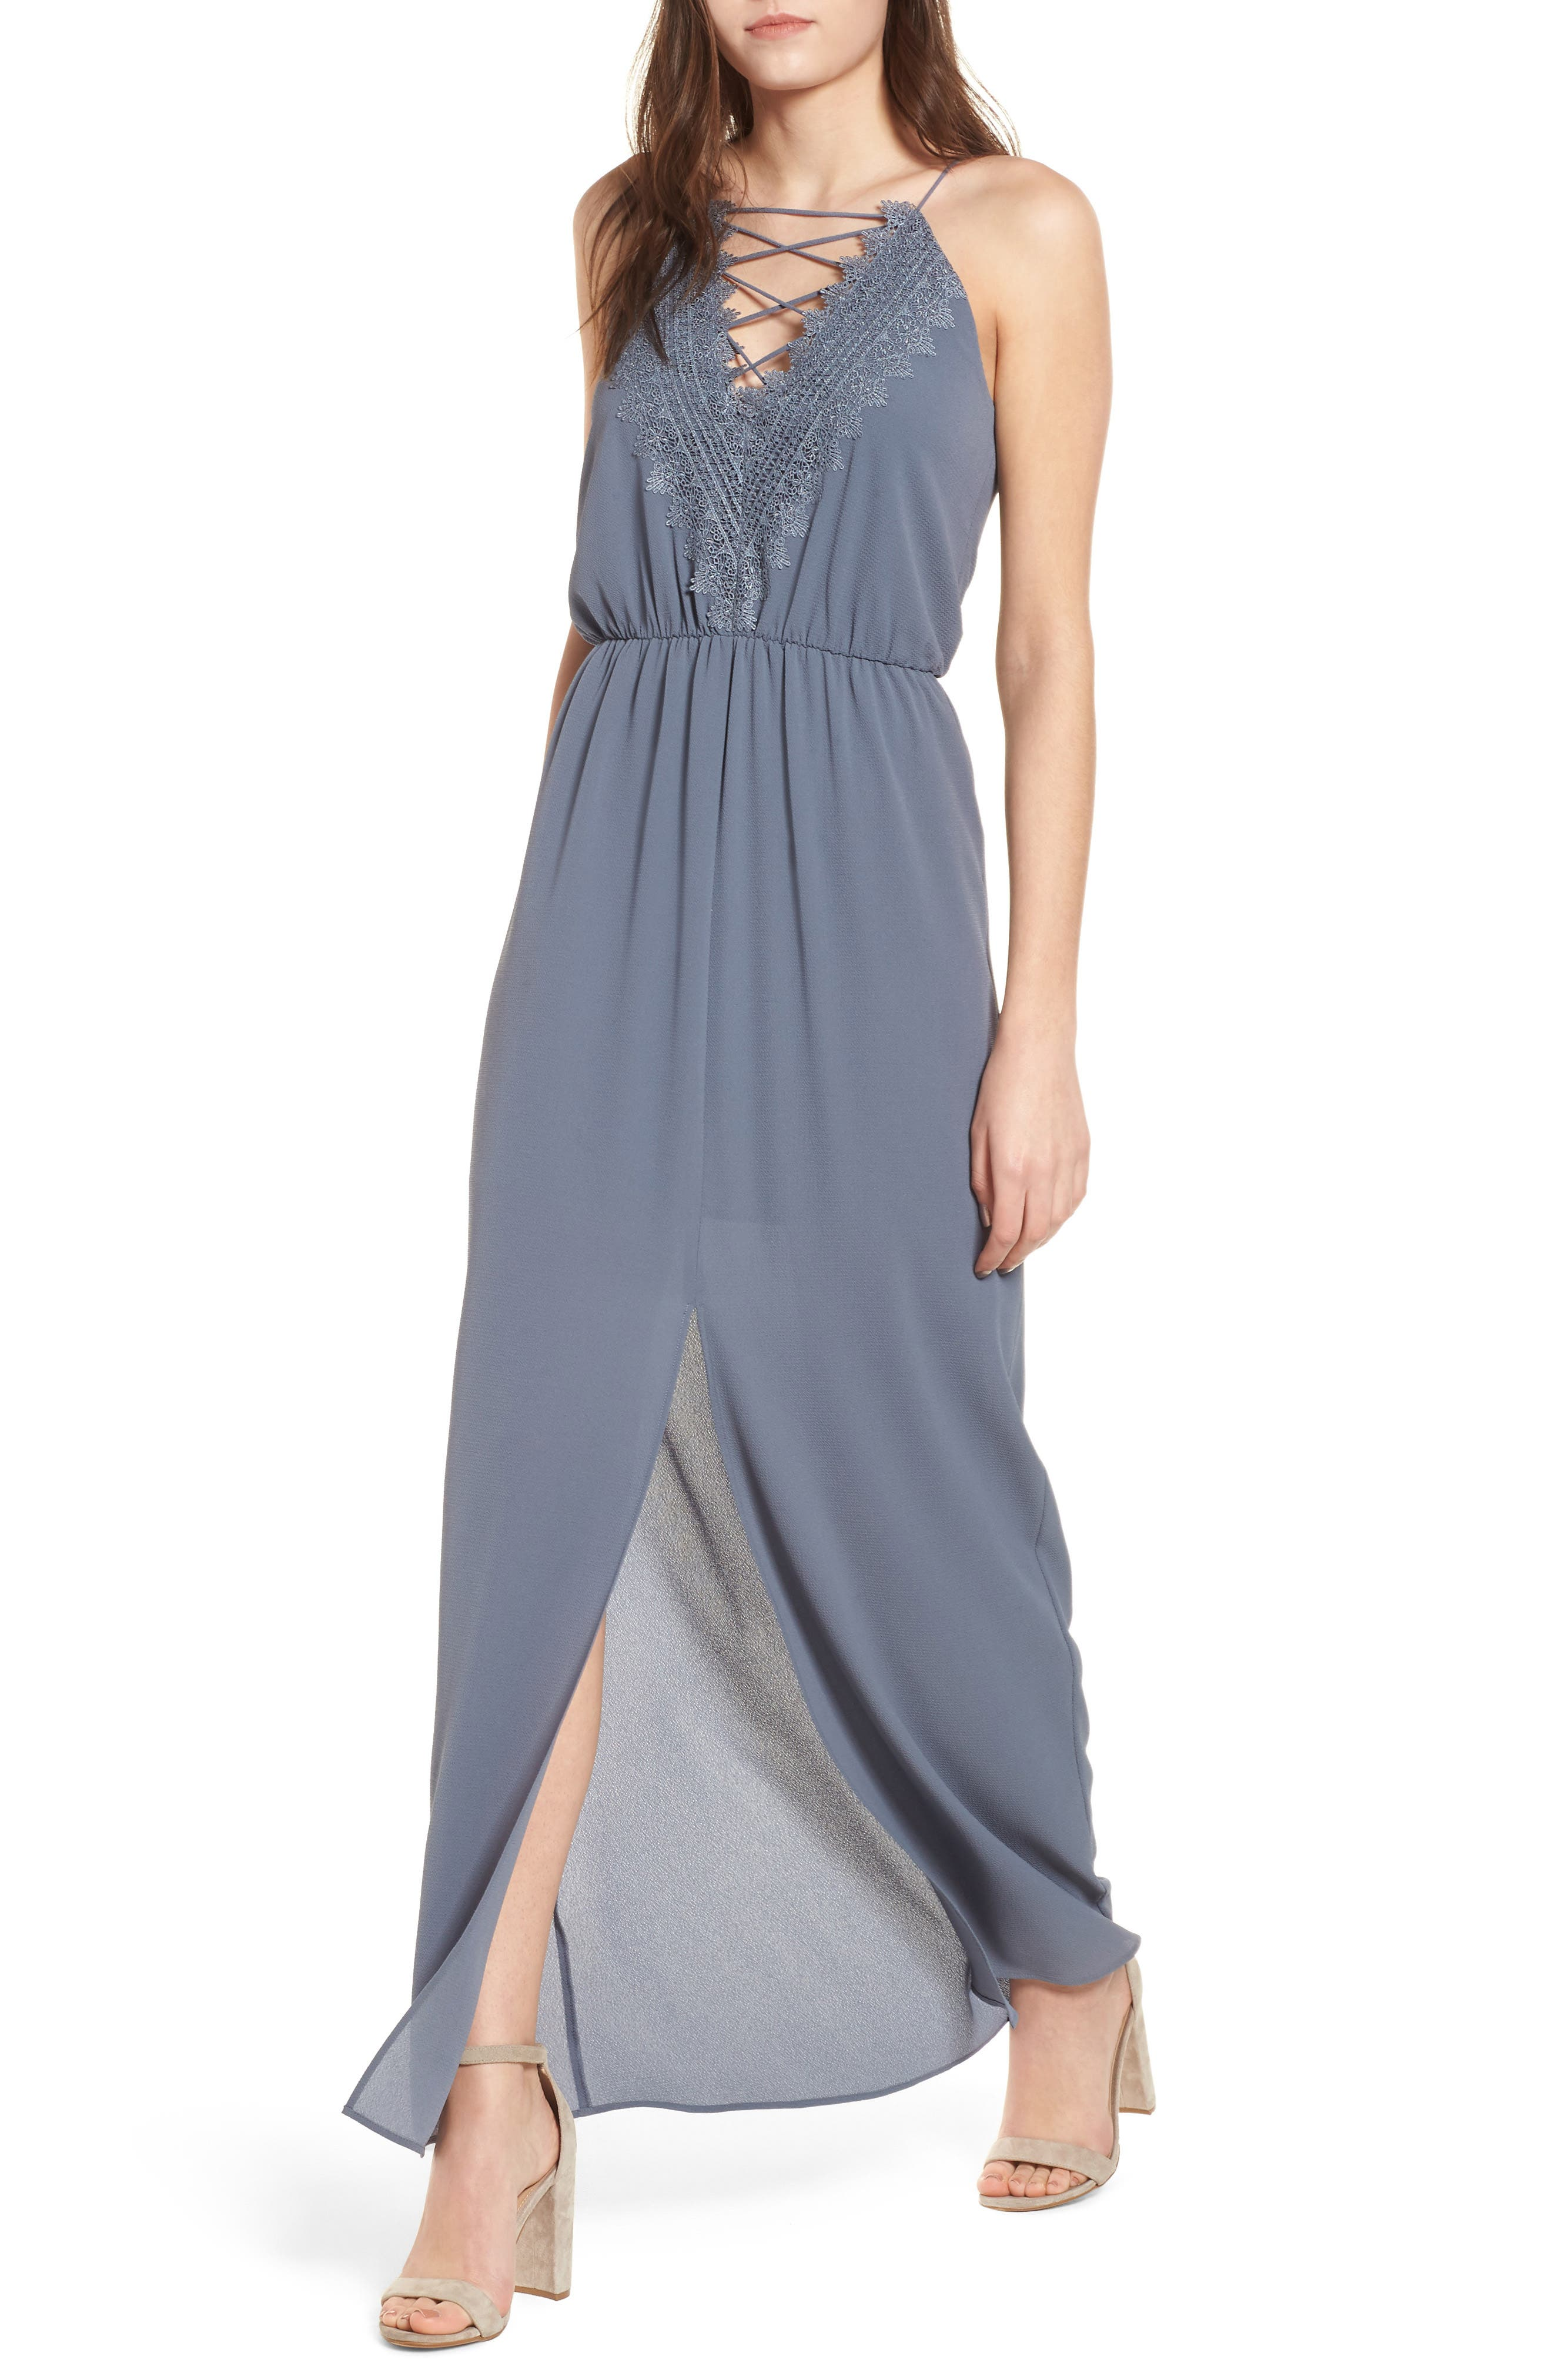 Posie Maxi Dress,                             Main thumbnail 1, color,                             027